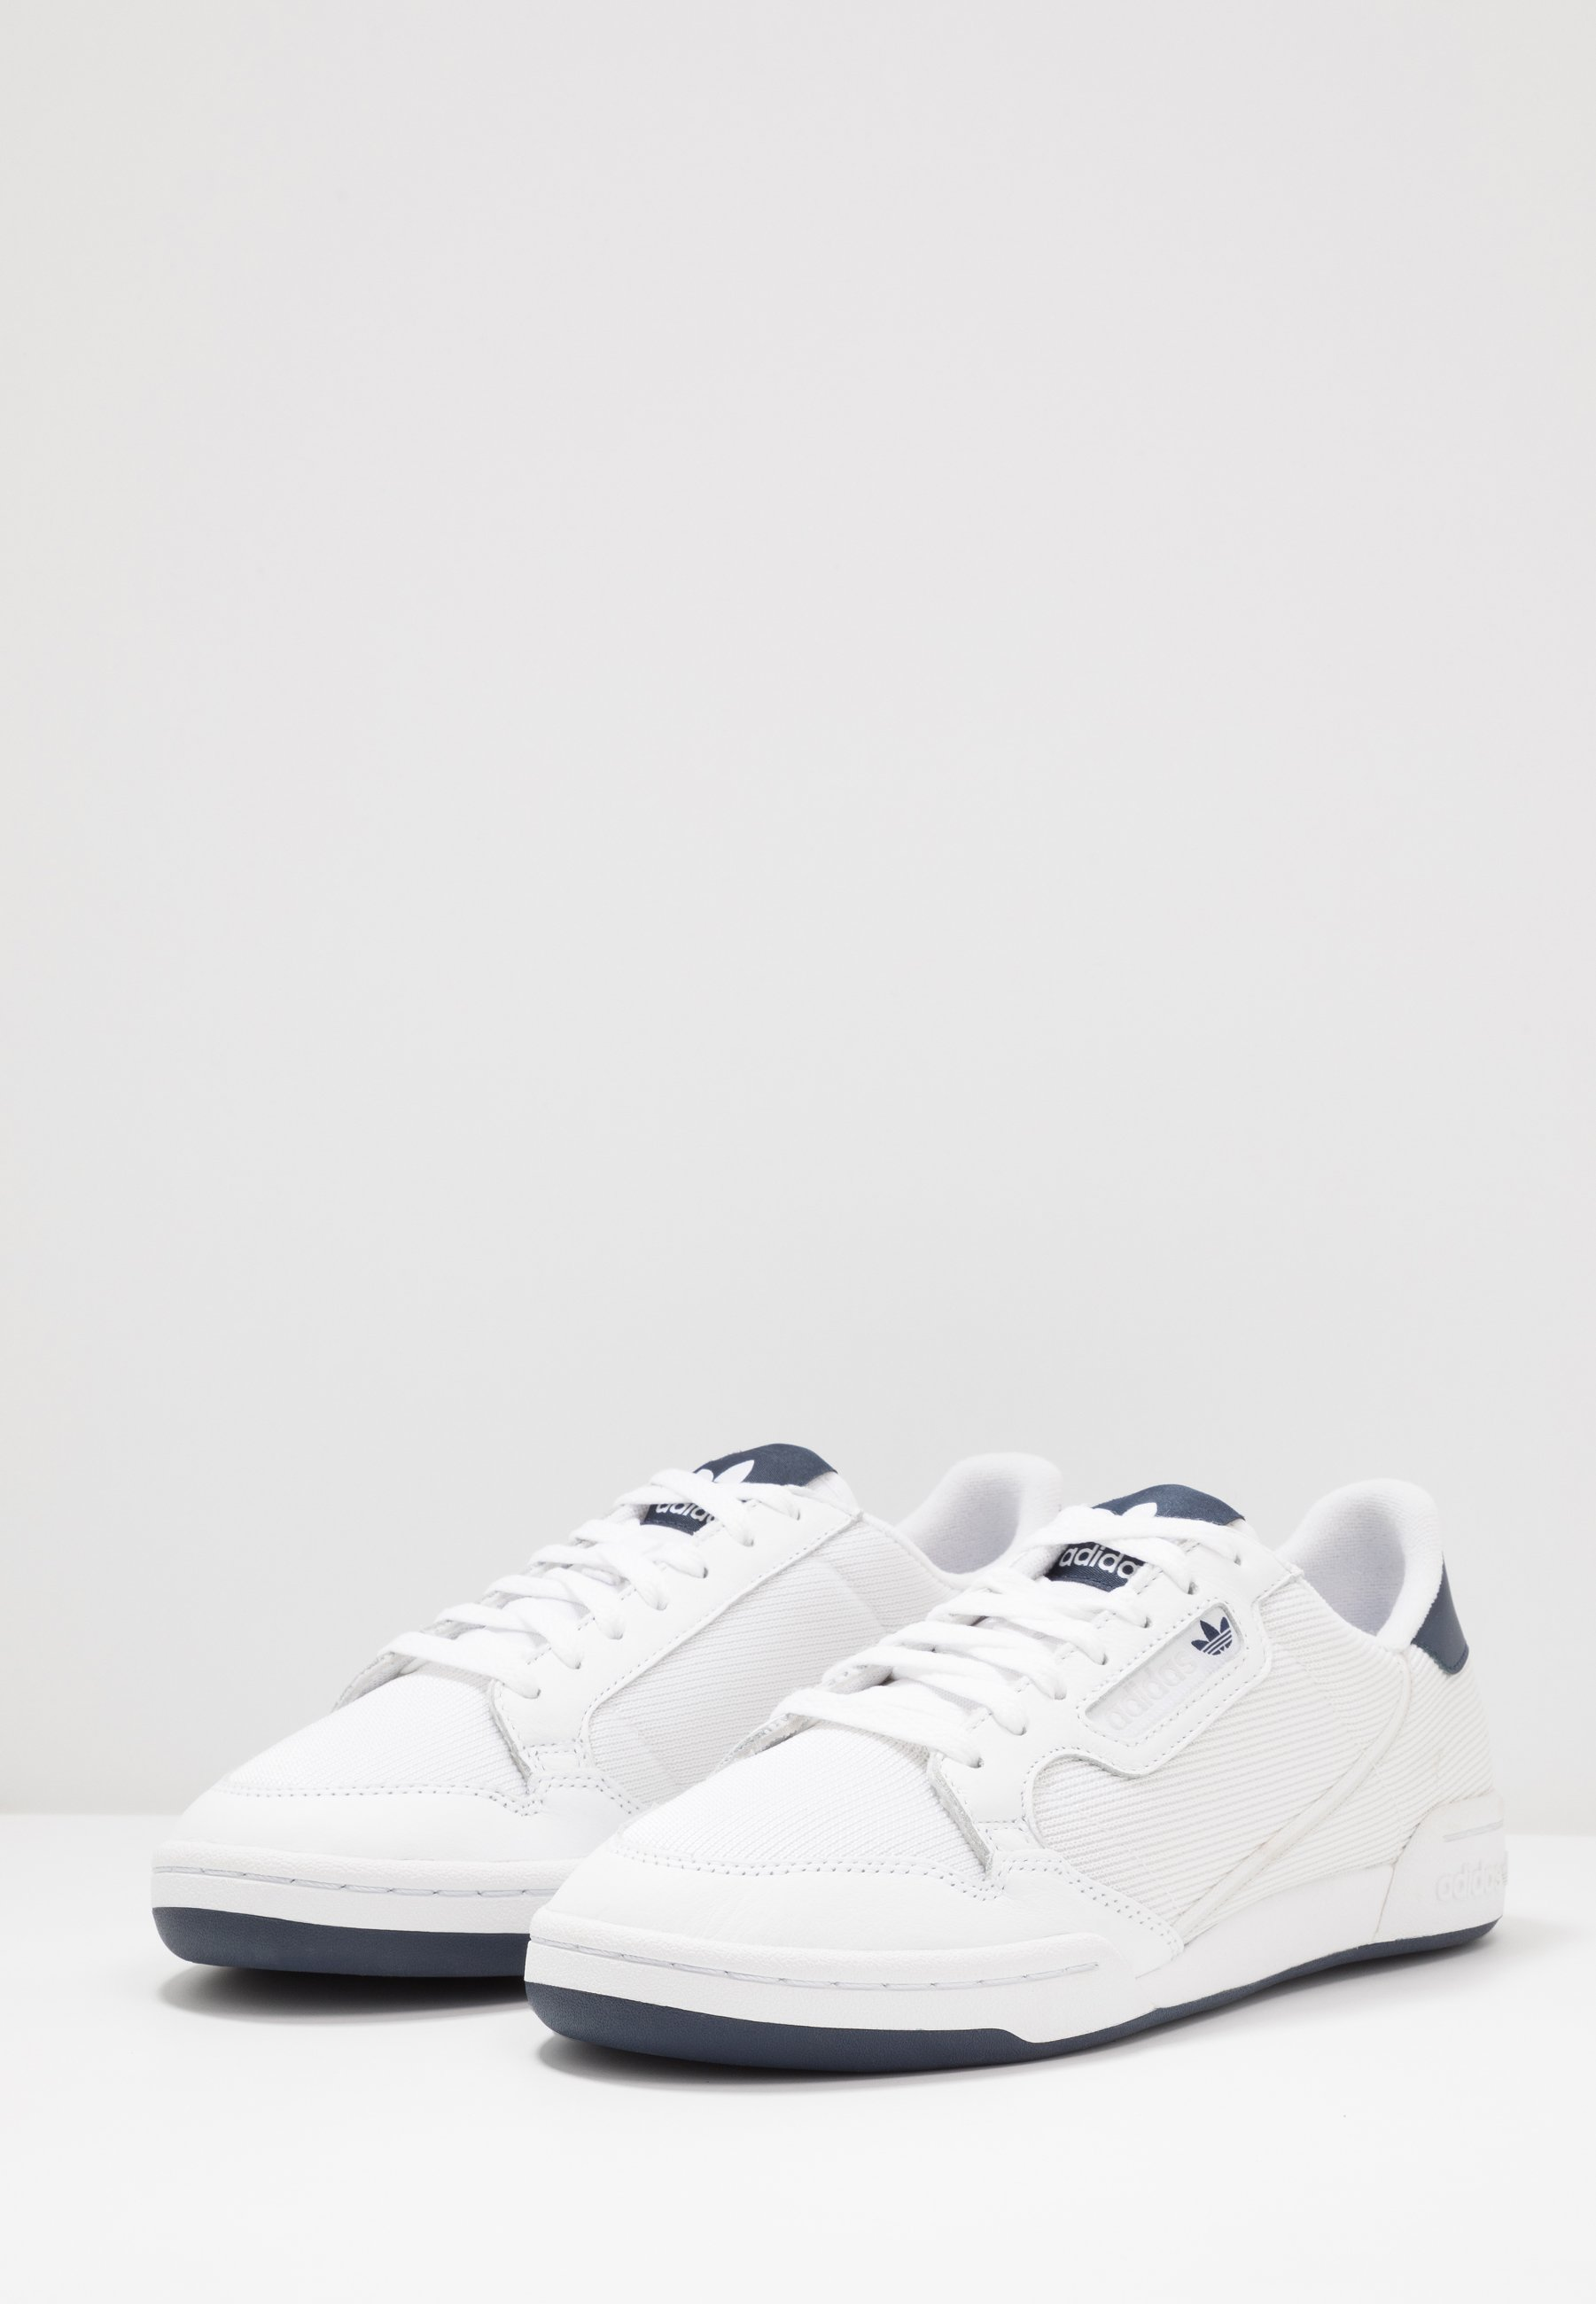 Adidas Originals Continental 80 - Sneakers Basse Footwear White/grey One/core Navy s0VCvk8